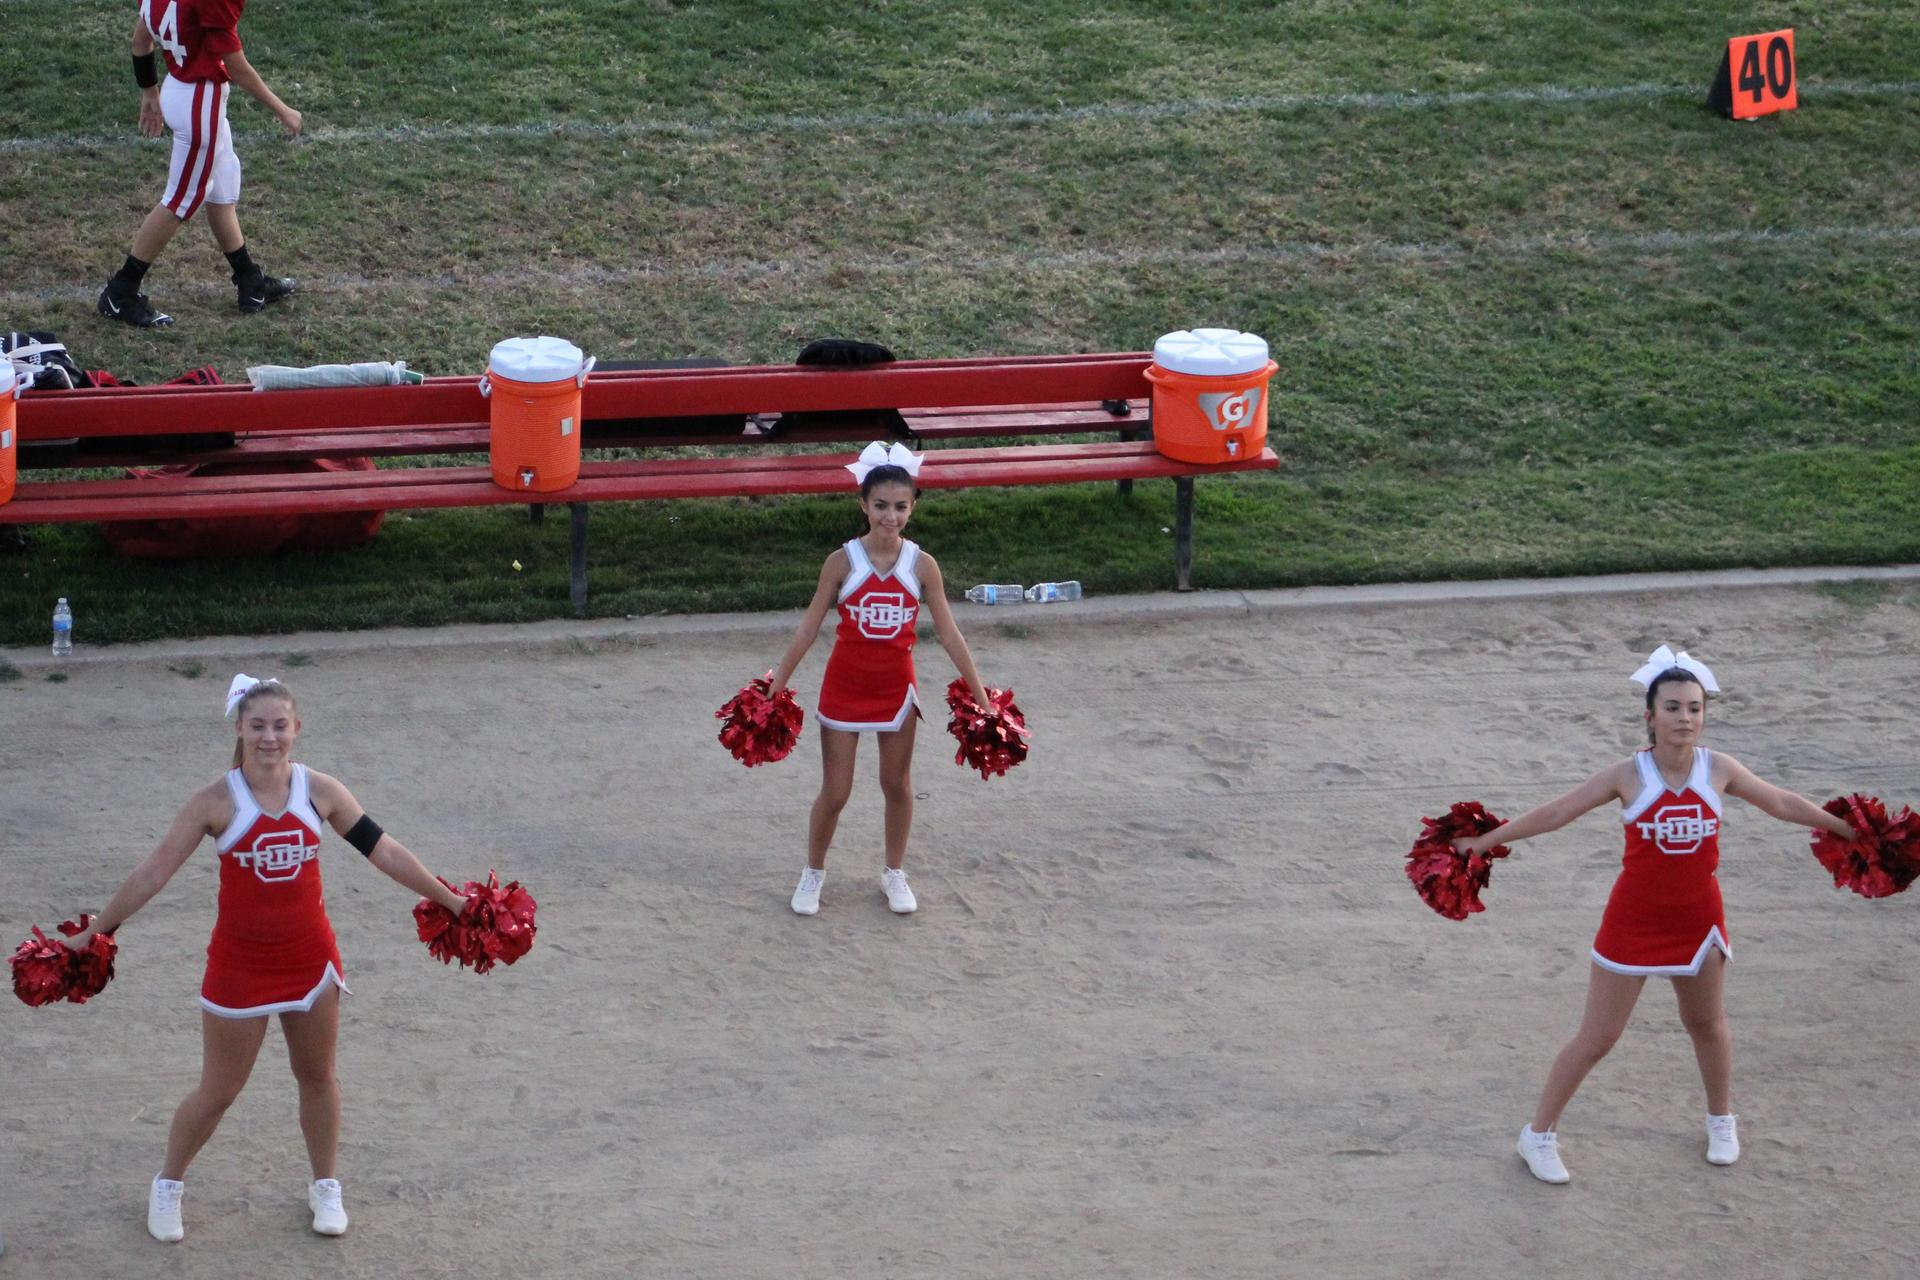 Junior Varsity Cheer in action at the Mendota football game